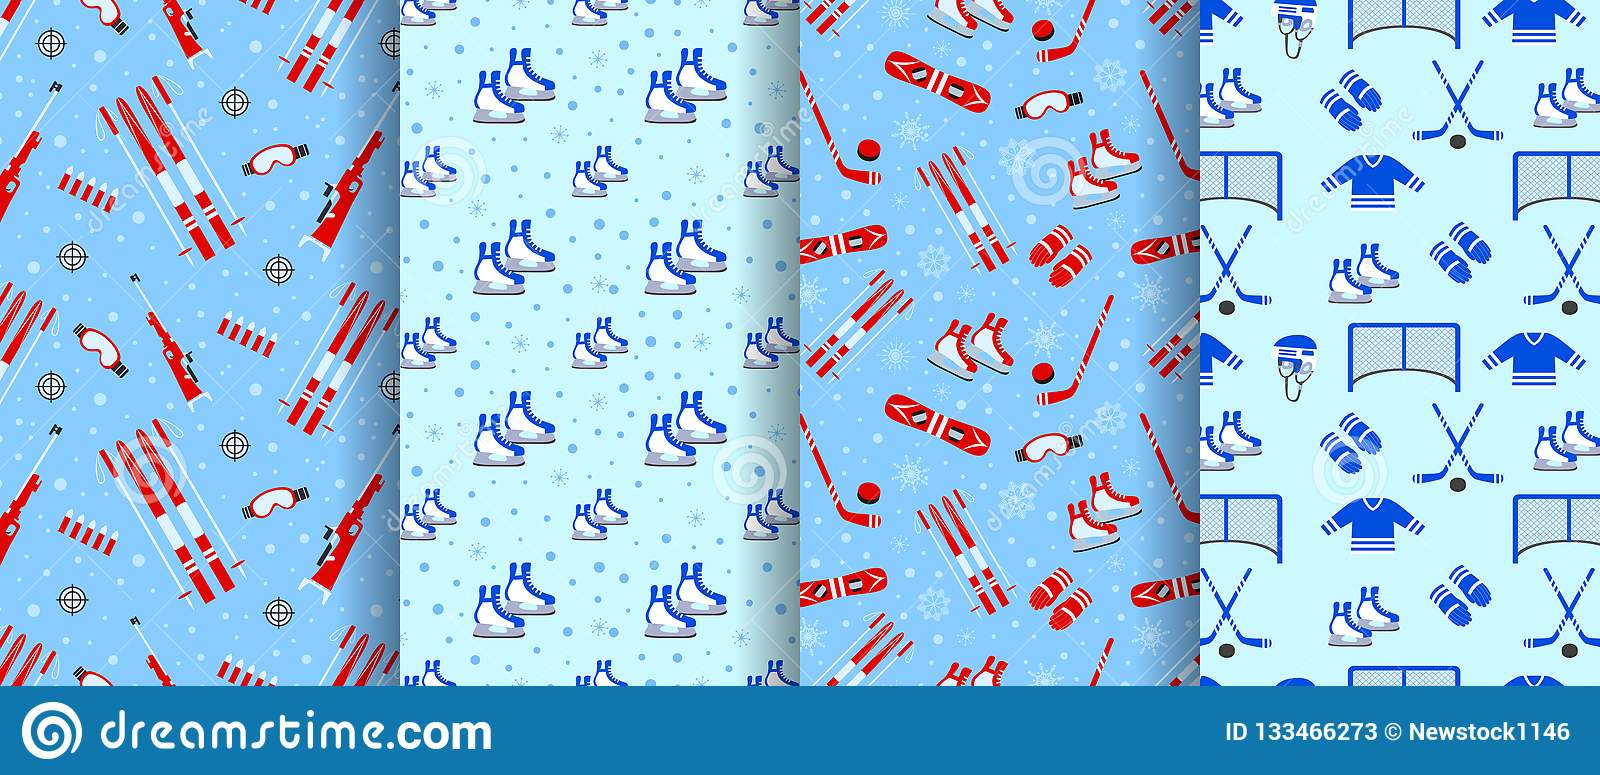 Winter Outdoors Seamless Pattern Collection Repeated